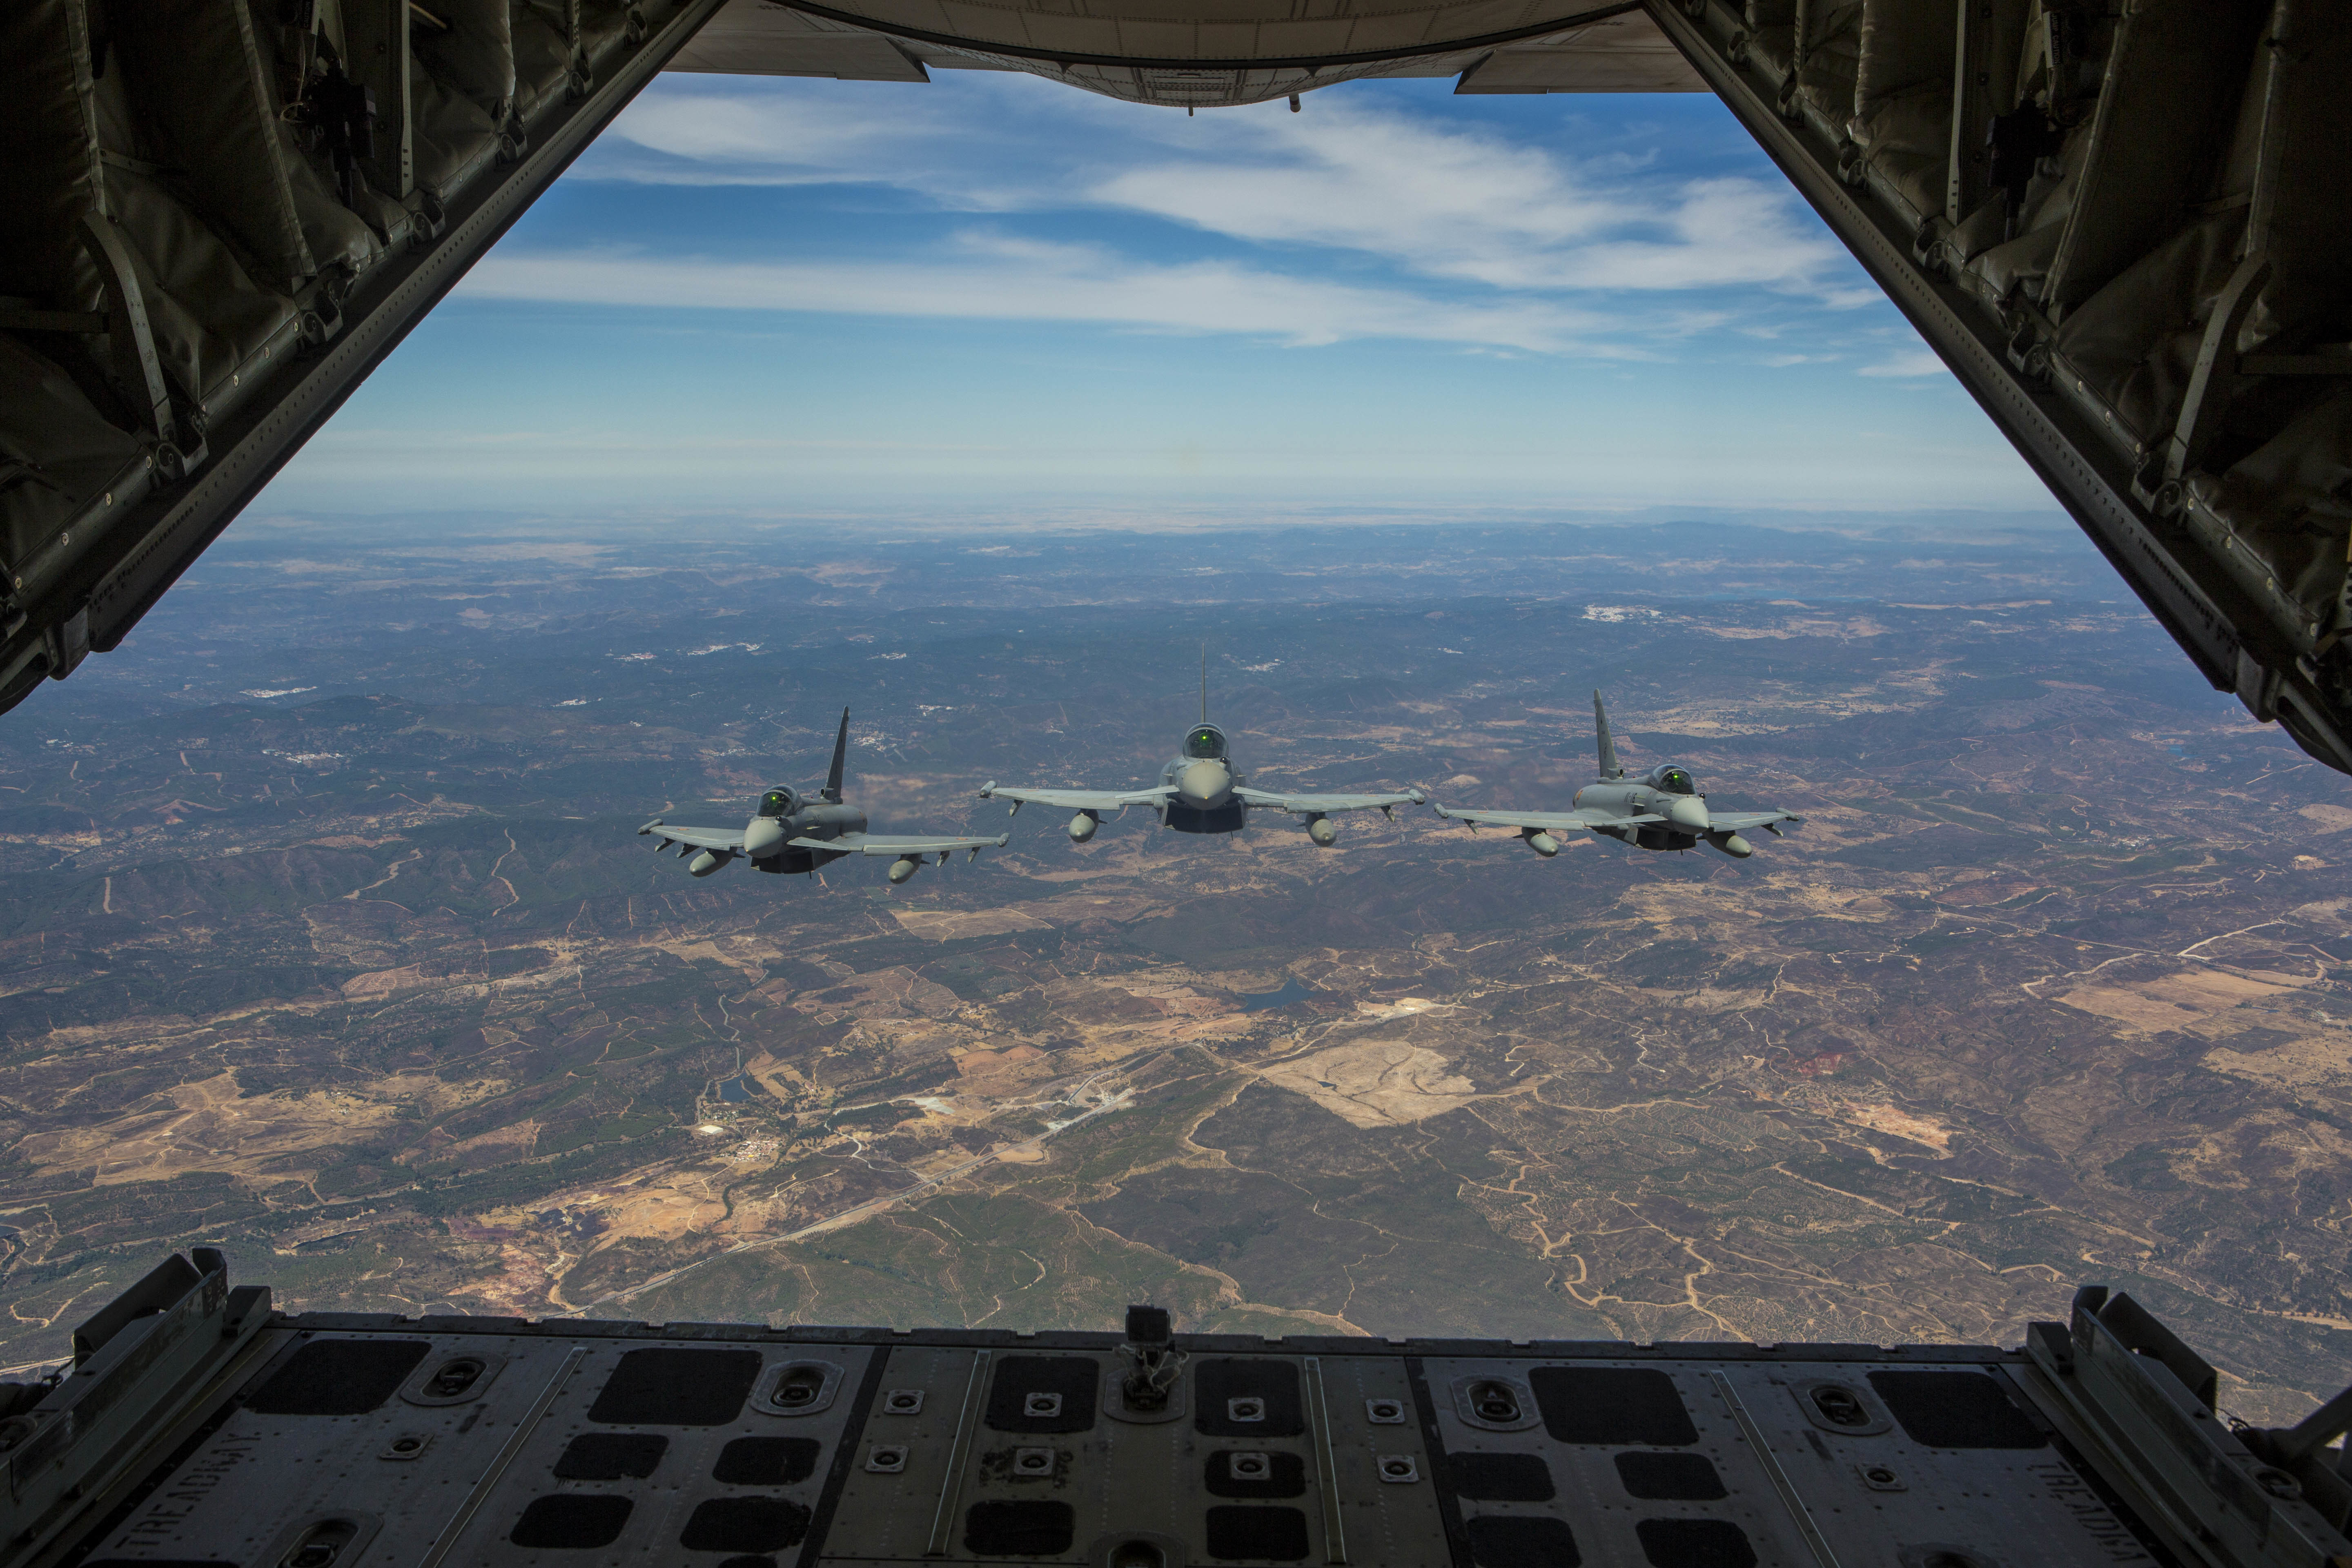 Three Eurofighter Typhoons with the Spanish Air Force escort a U.S. Marine Corps KC-130J Hercules during an aerial refueling mission, Aug. 13, in Spain. Bilateral exercises such as this one are how Spain and the U.S. foster one of the closest defense partnerships around the world. (U.S. Marine Corps photo by Staff Sgt. Vitaliy Rusavskiy/Released)